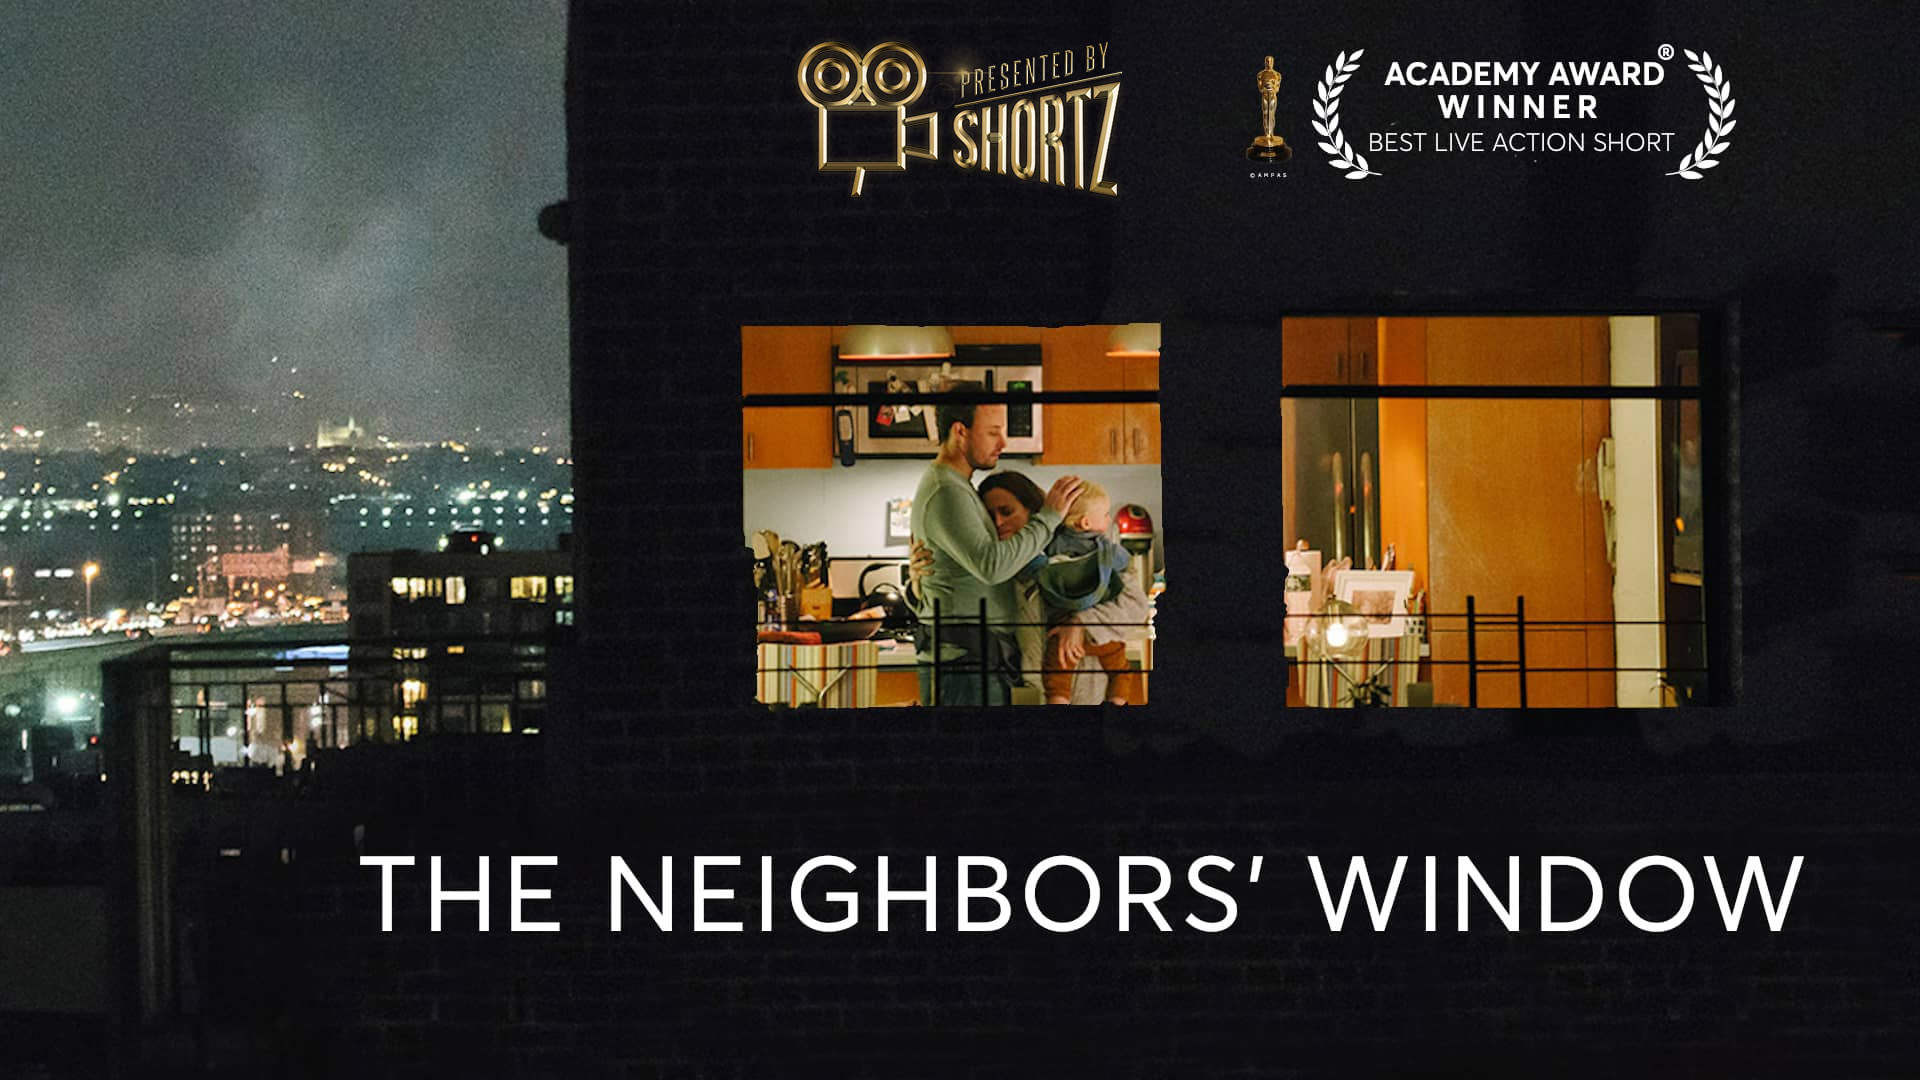 The Neighbors' Window - Presented by Shortz